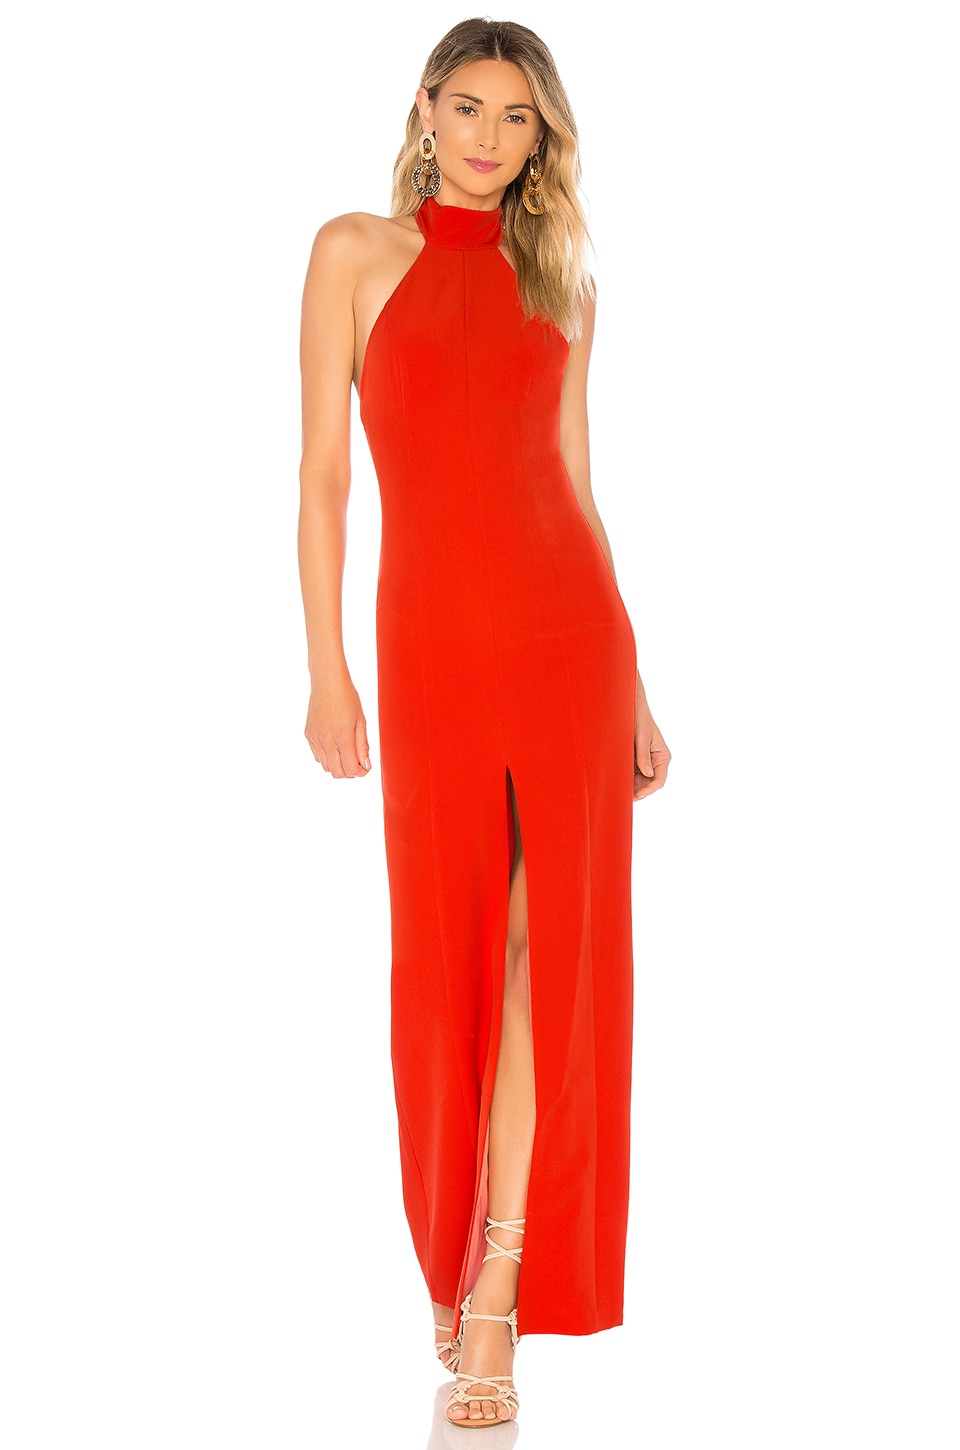 House of Harlow 1960 x REVOLVE Diana Dress in Red Orange